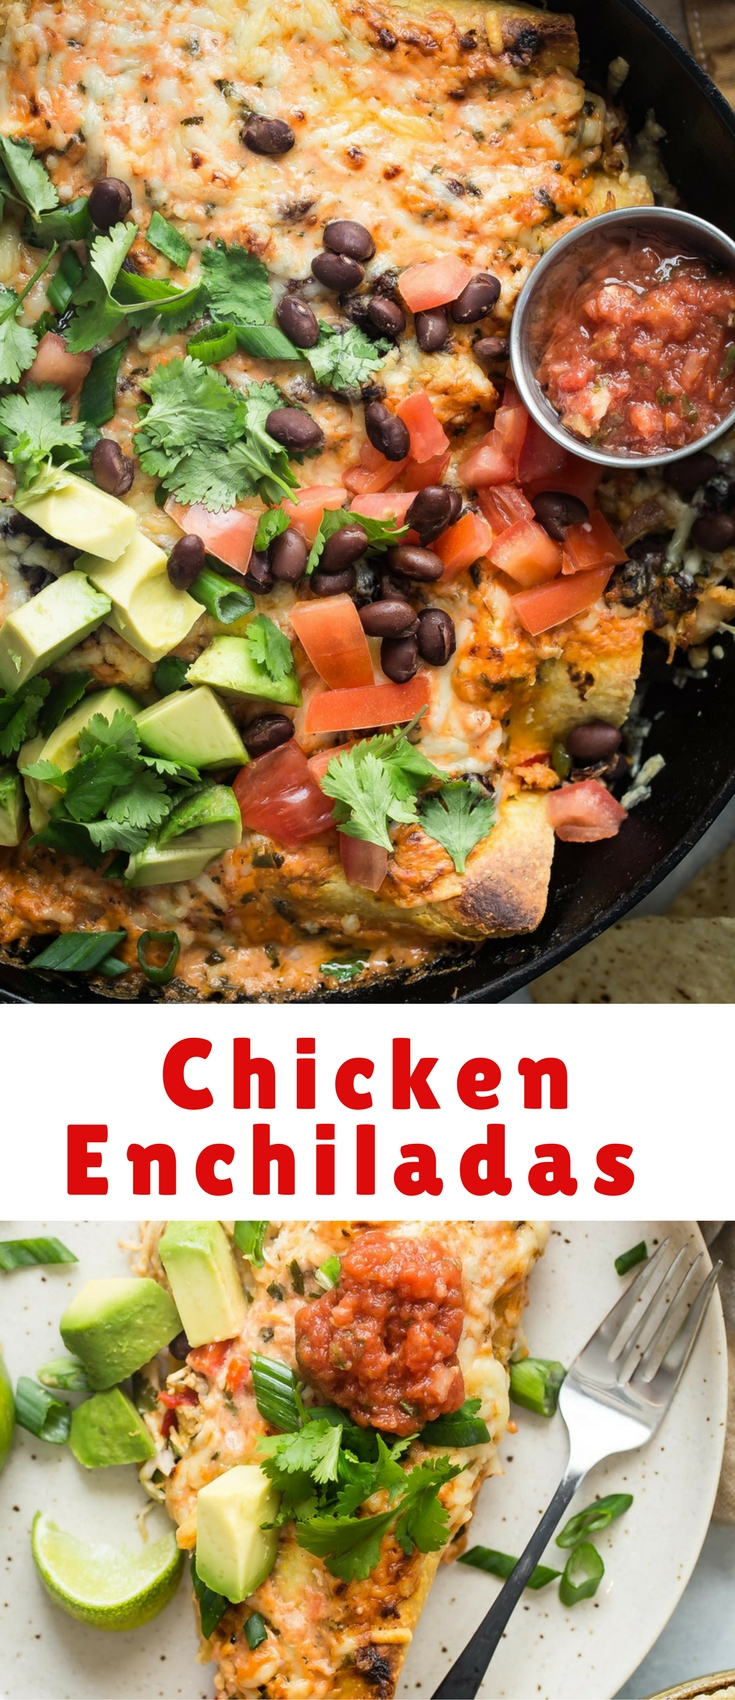 Chicken Enchiladas must be one of the easiest dinners to prepare, and still be high up on the delectable comfort food list.